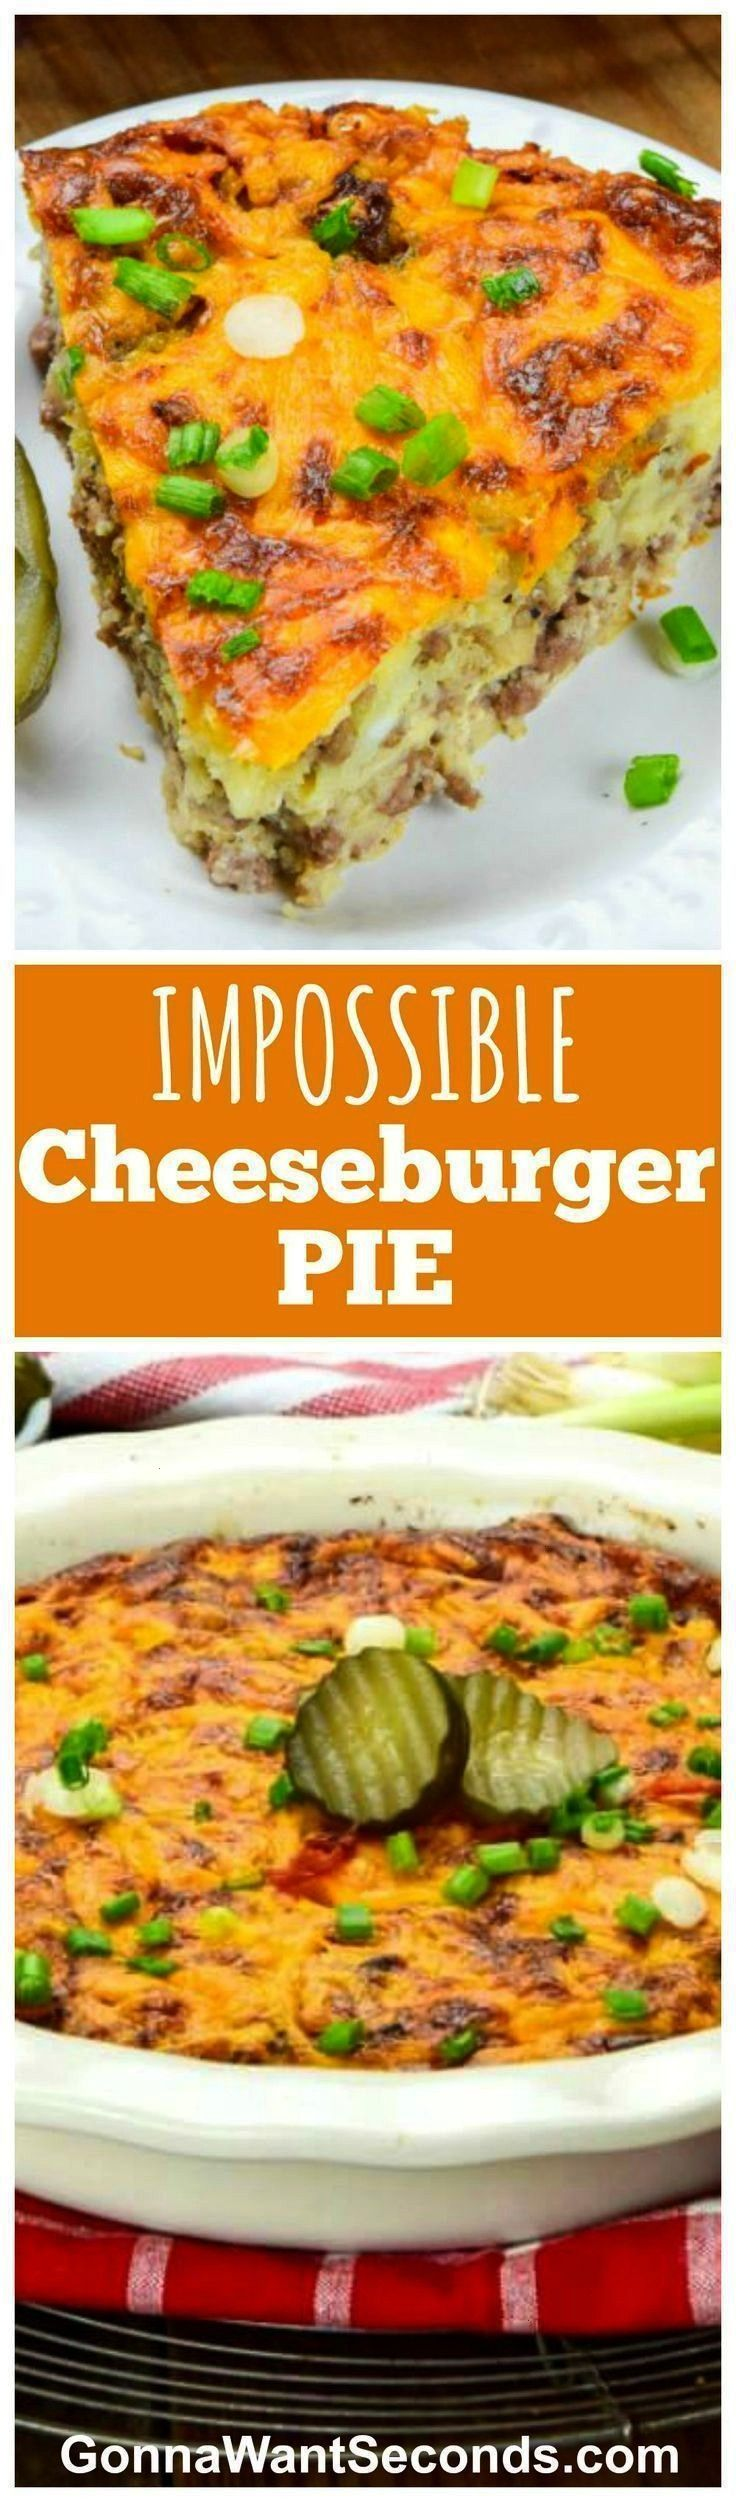 Impossible Cheeseburger Pie  Delicious Recipes and Family Favorite Meals Bisquick Impossible Cheeseburger Pie  Delicious Recipes and Family Favorite Meals  Bisquick Impos...